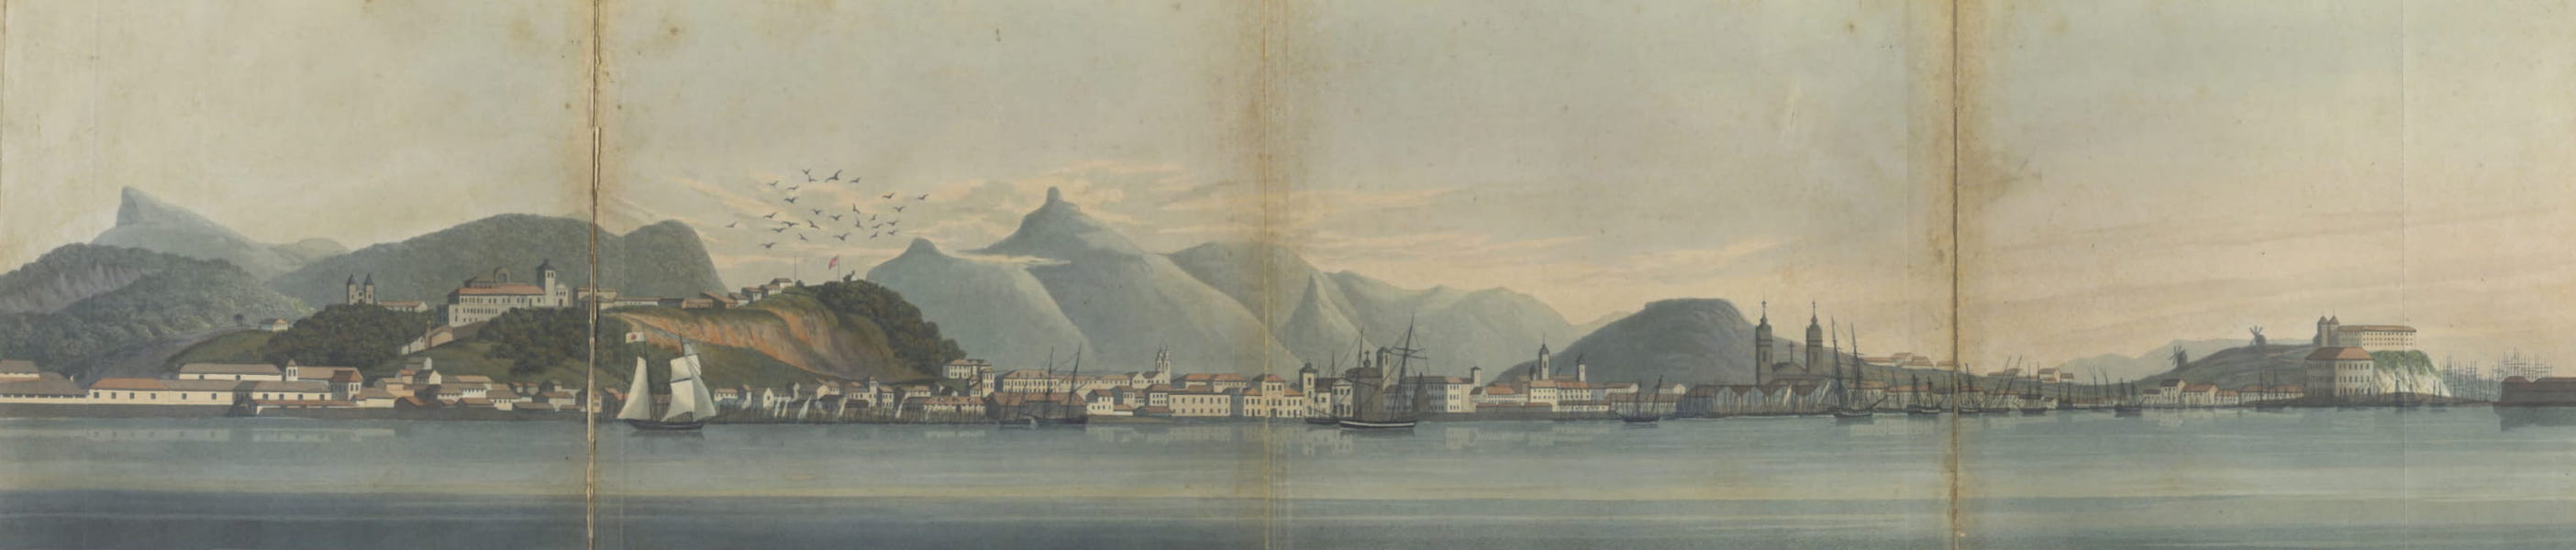 Views and Costumes of the City and Neighbourhood of Rio de Janeiro - View of the City of Rio de Janeiro taken from the Anchorage (1822)